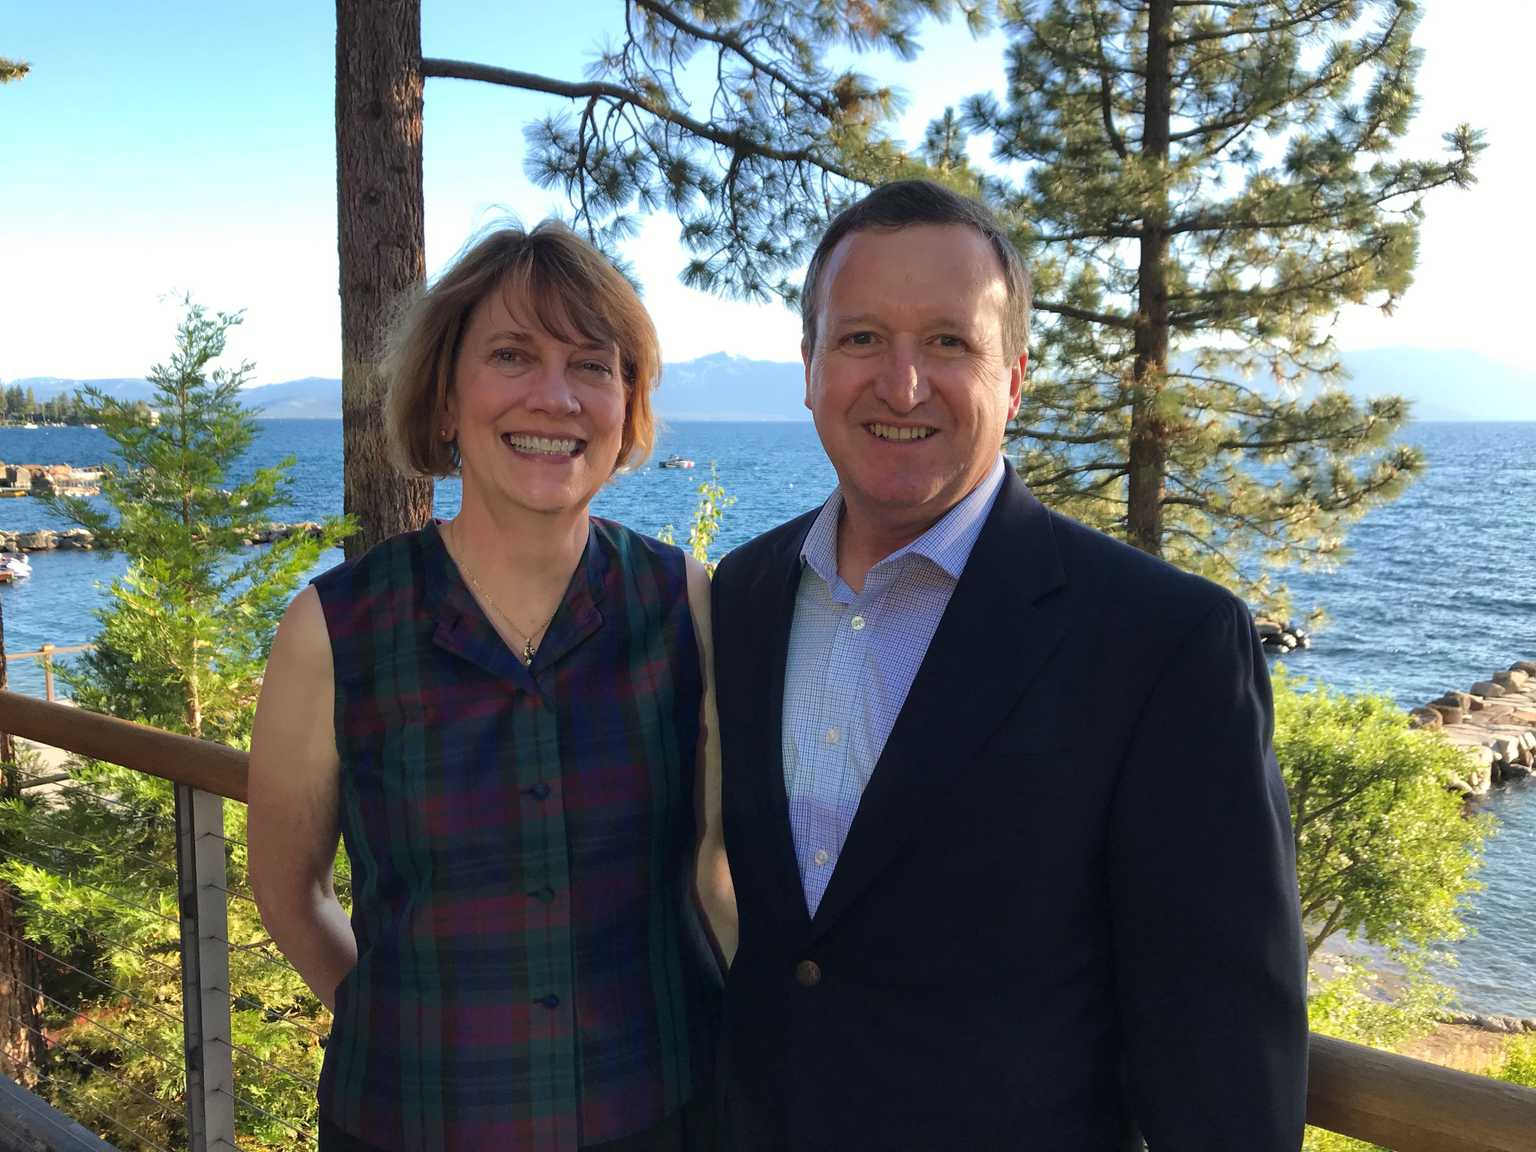 Read why Kevin and Anne Marie made arrangements to support the Community Endowment